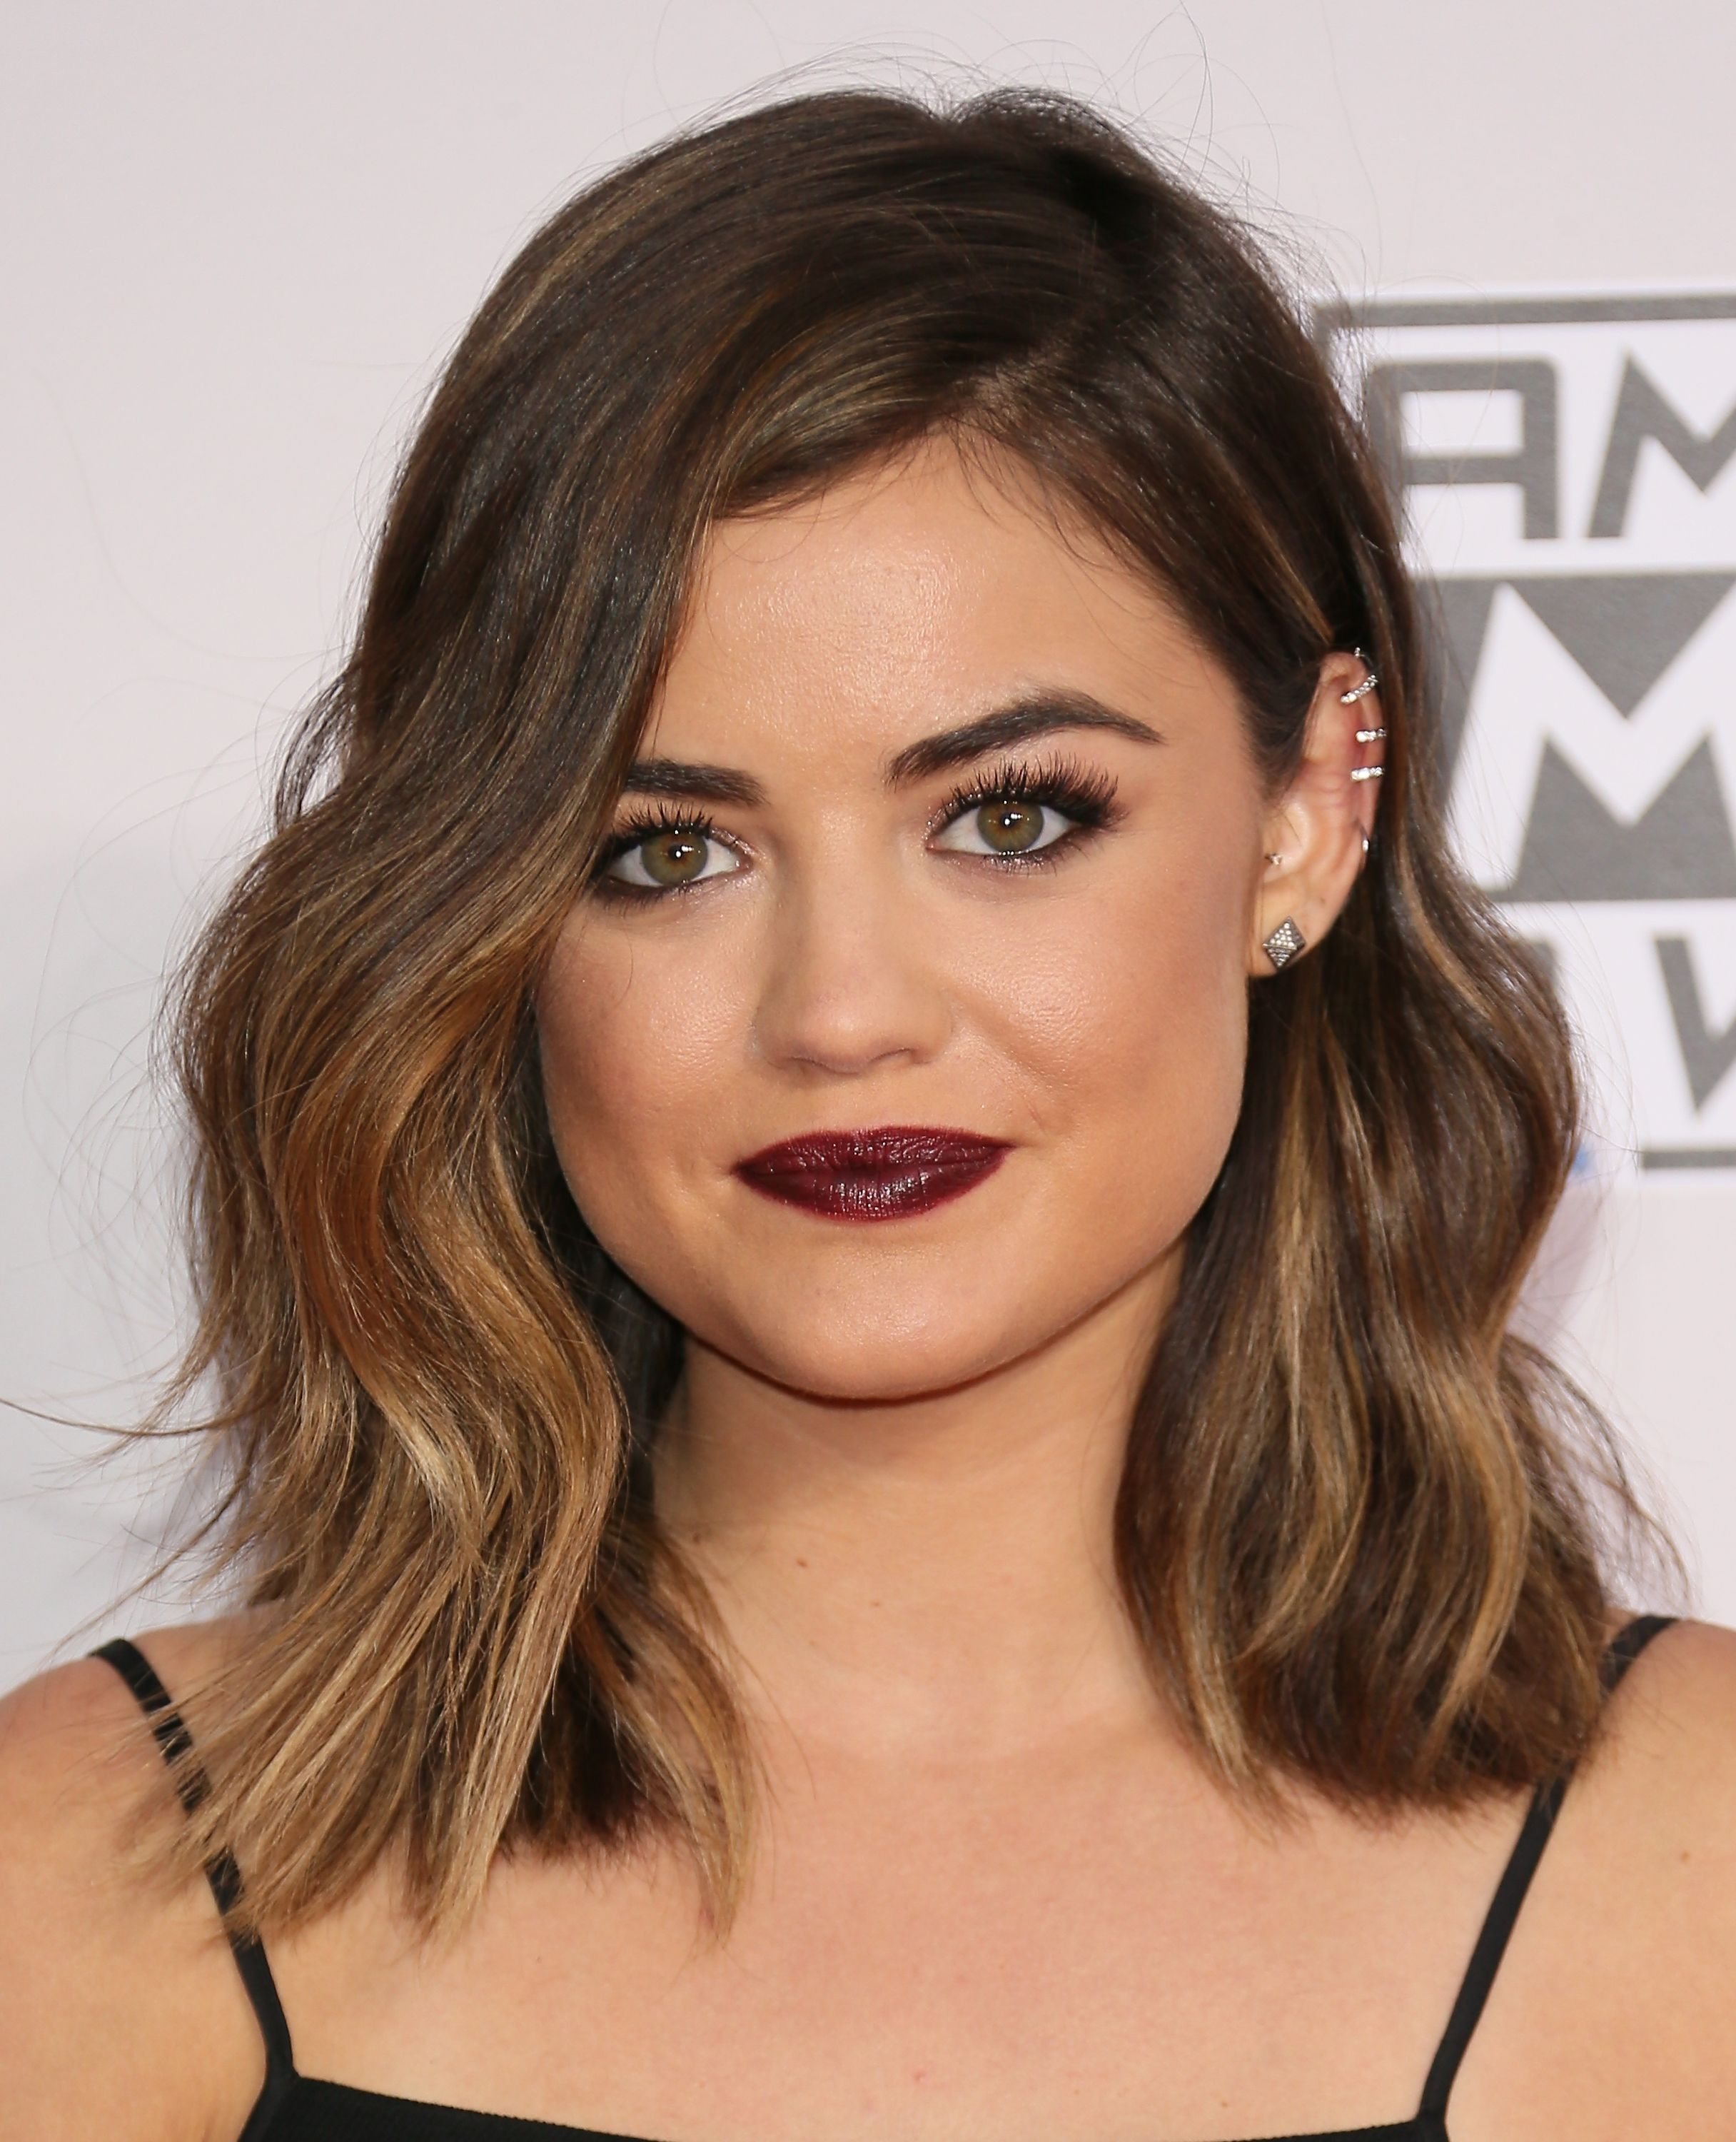 Lucy Hale More My Hair Looks Just Like This Except Without The Highlights